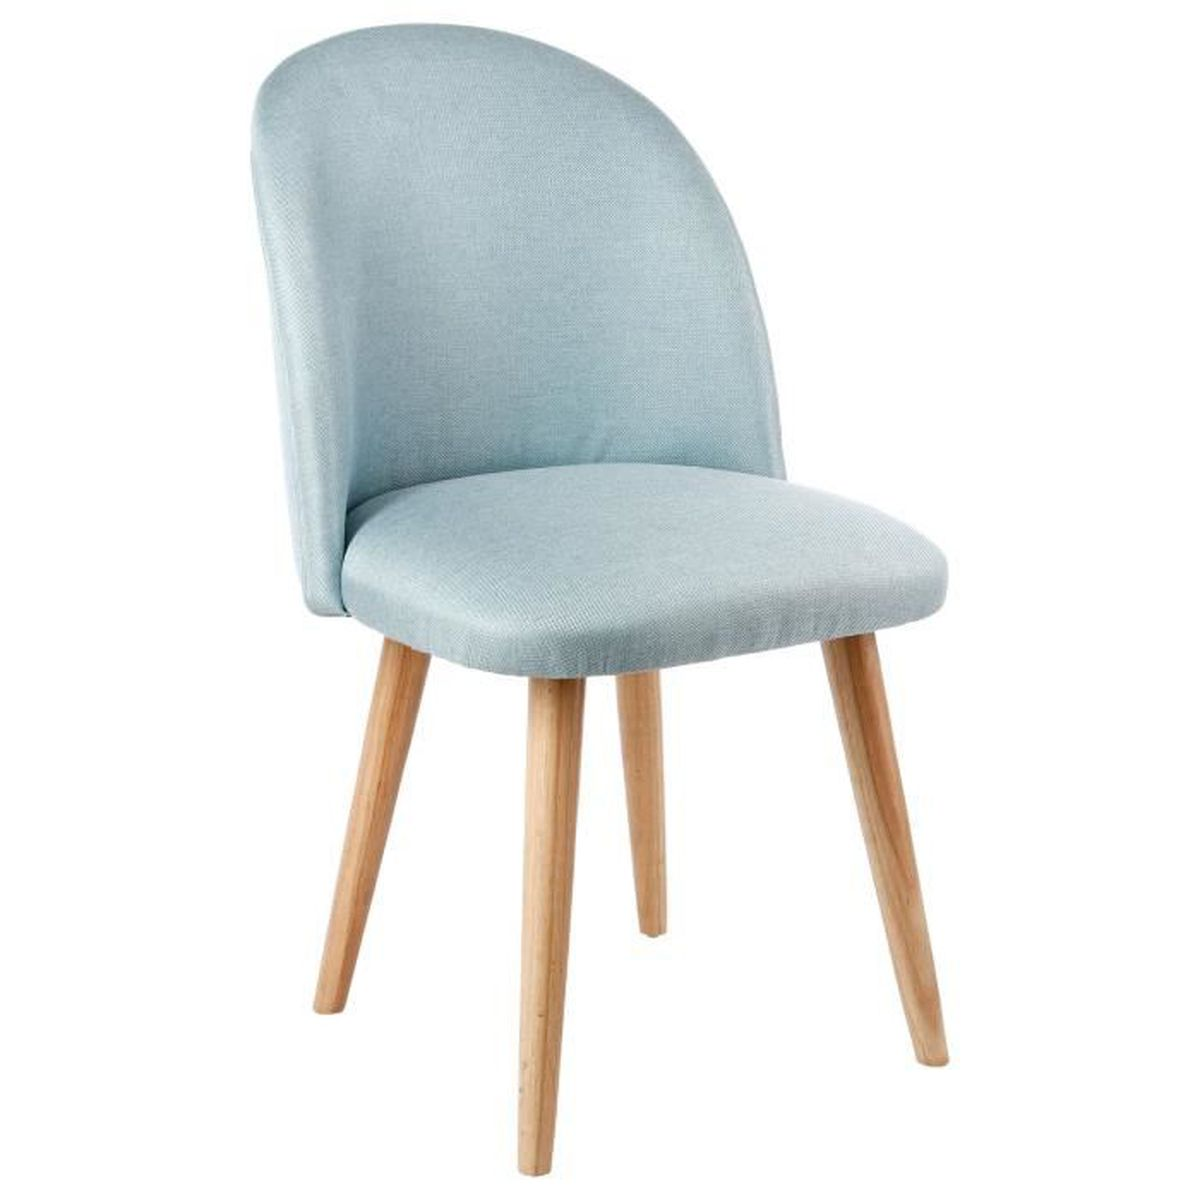 Chaise scandinave bleu achat vente chaise scandinave for Chaise scandinave pas cher